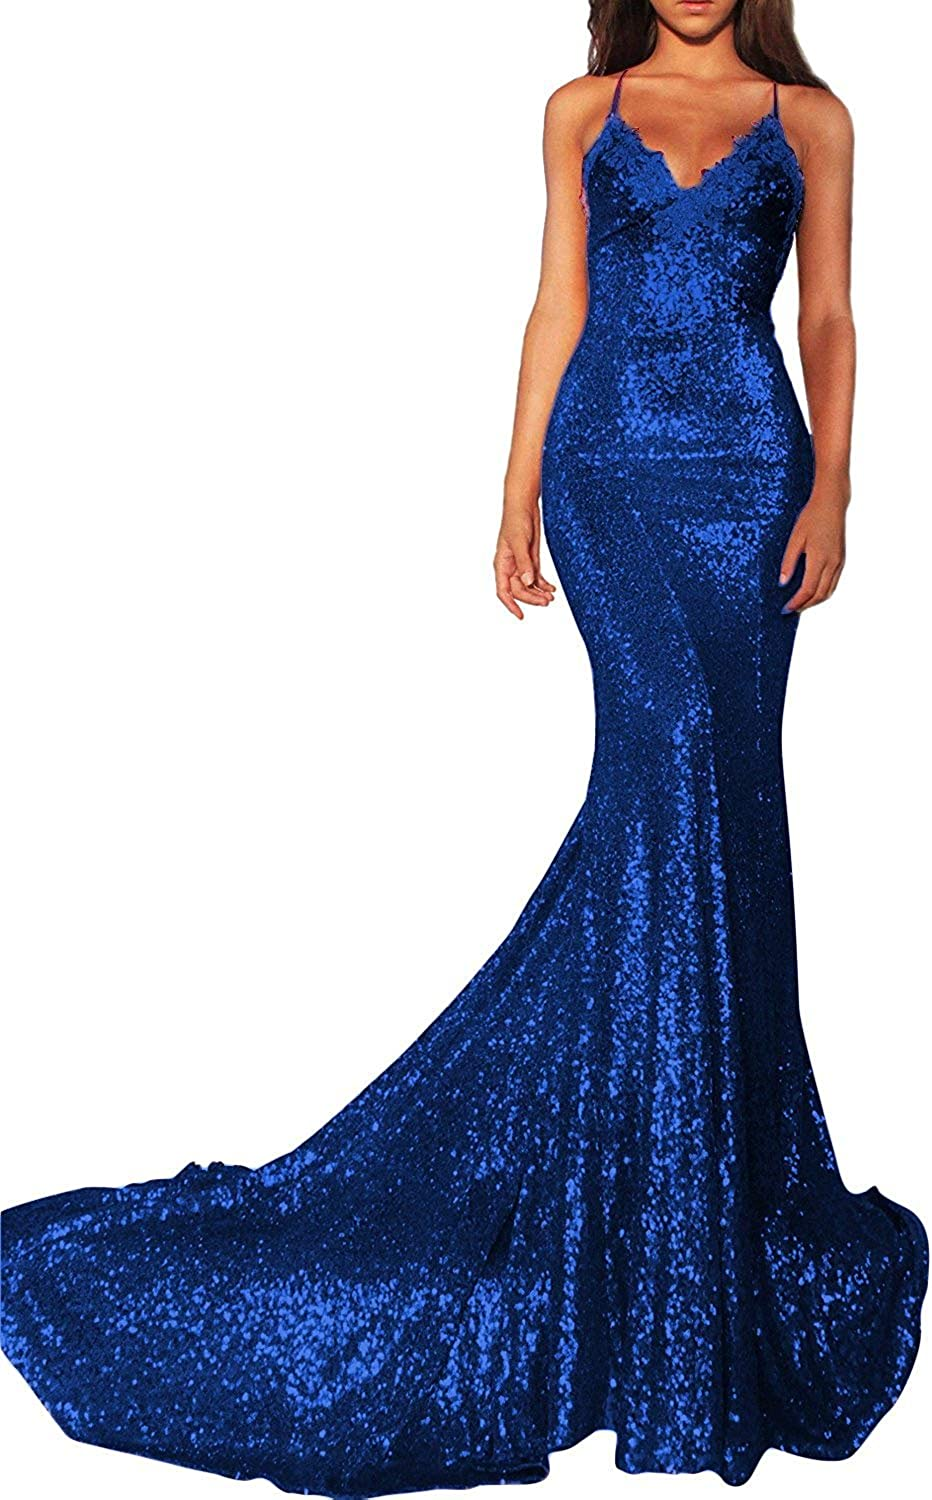 20KyleBird Sexy Spaghetti Strap Sequins Pageant Dresses Lace Mermaid Prom Dresses Long 2018 VNeck Backless Evening Gown